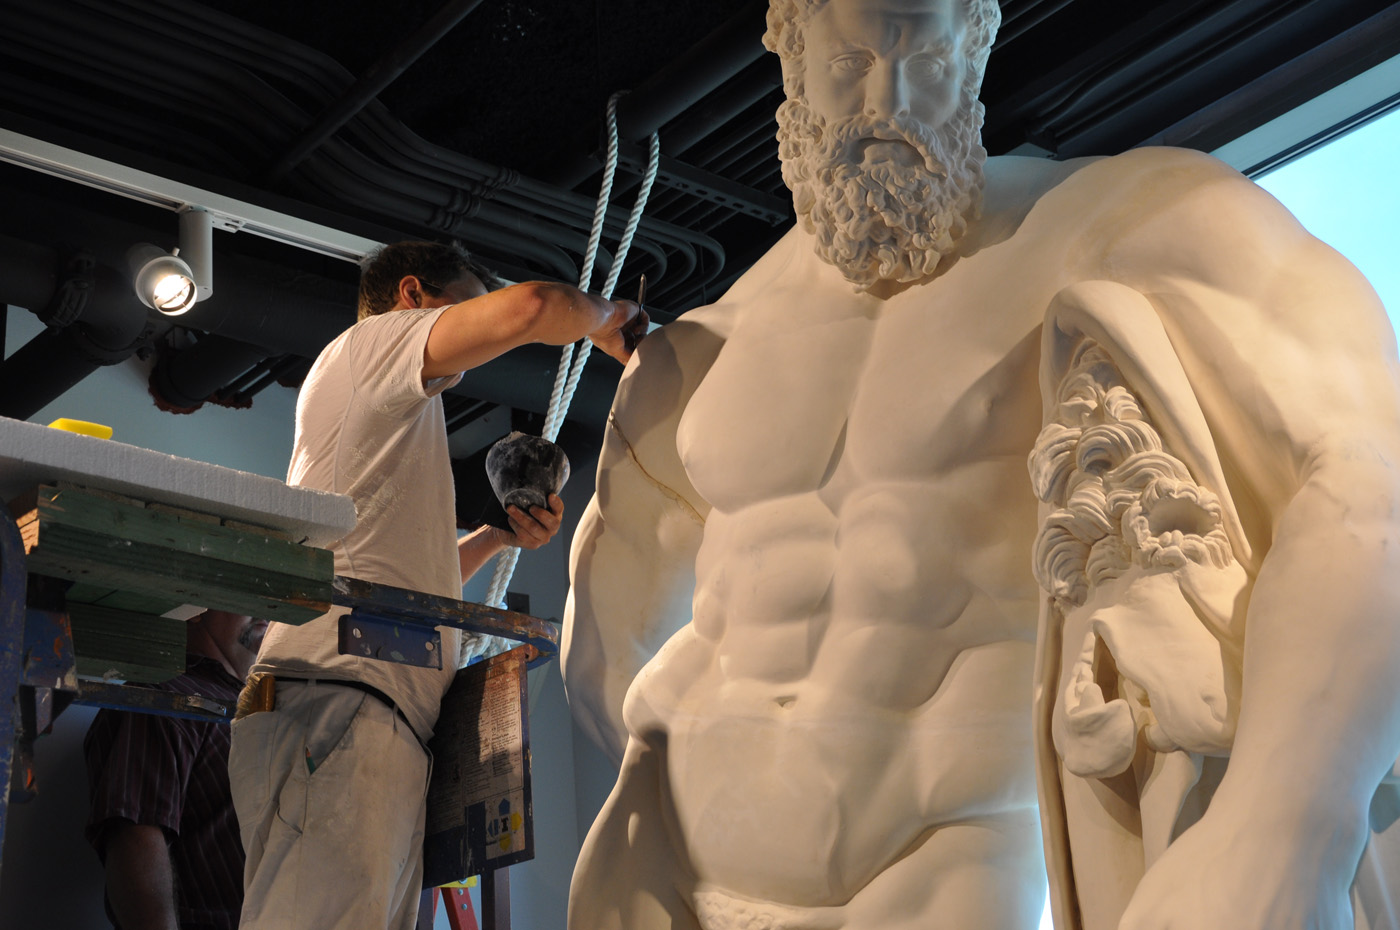 Front view of the top half of the statue of the Farnese Hercules being installed, while two men work on it, in the main lobby, in 2009.